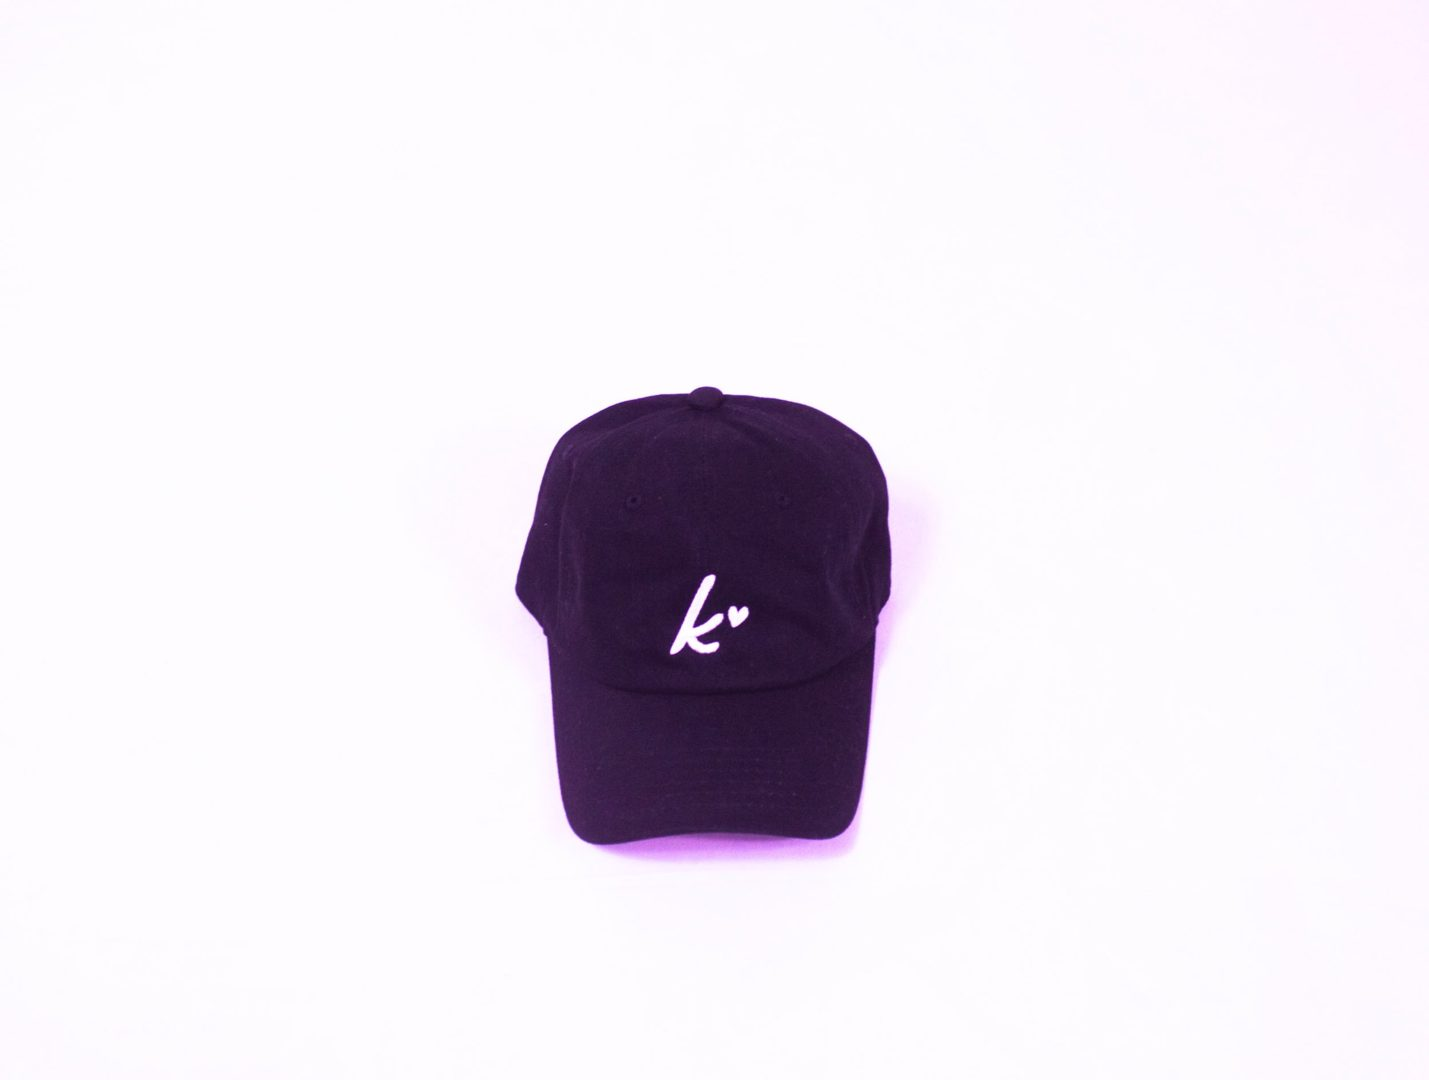 "alt=""Black Kollection ball cap hat with K and heart"""